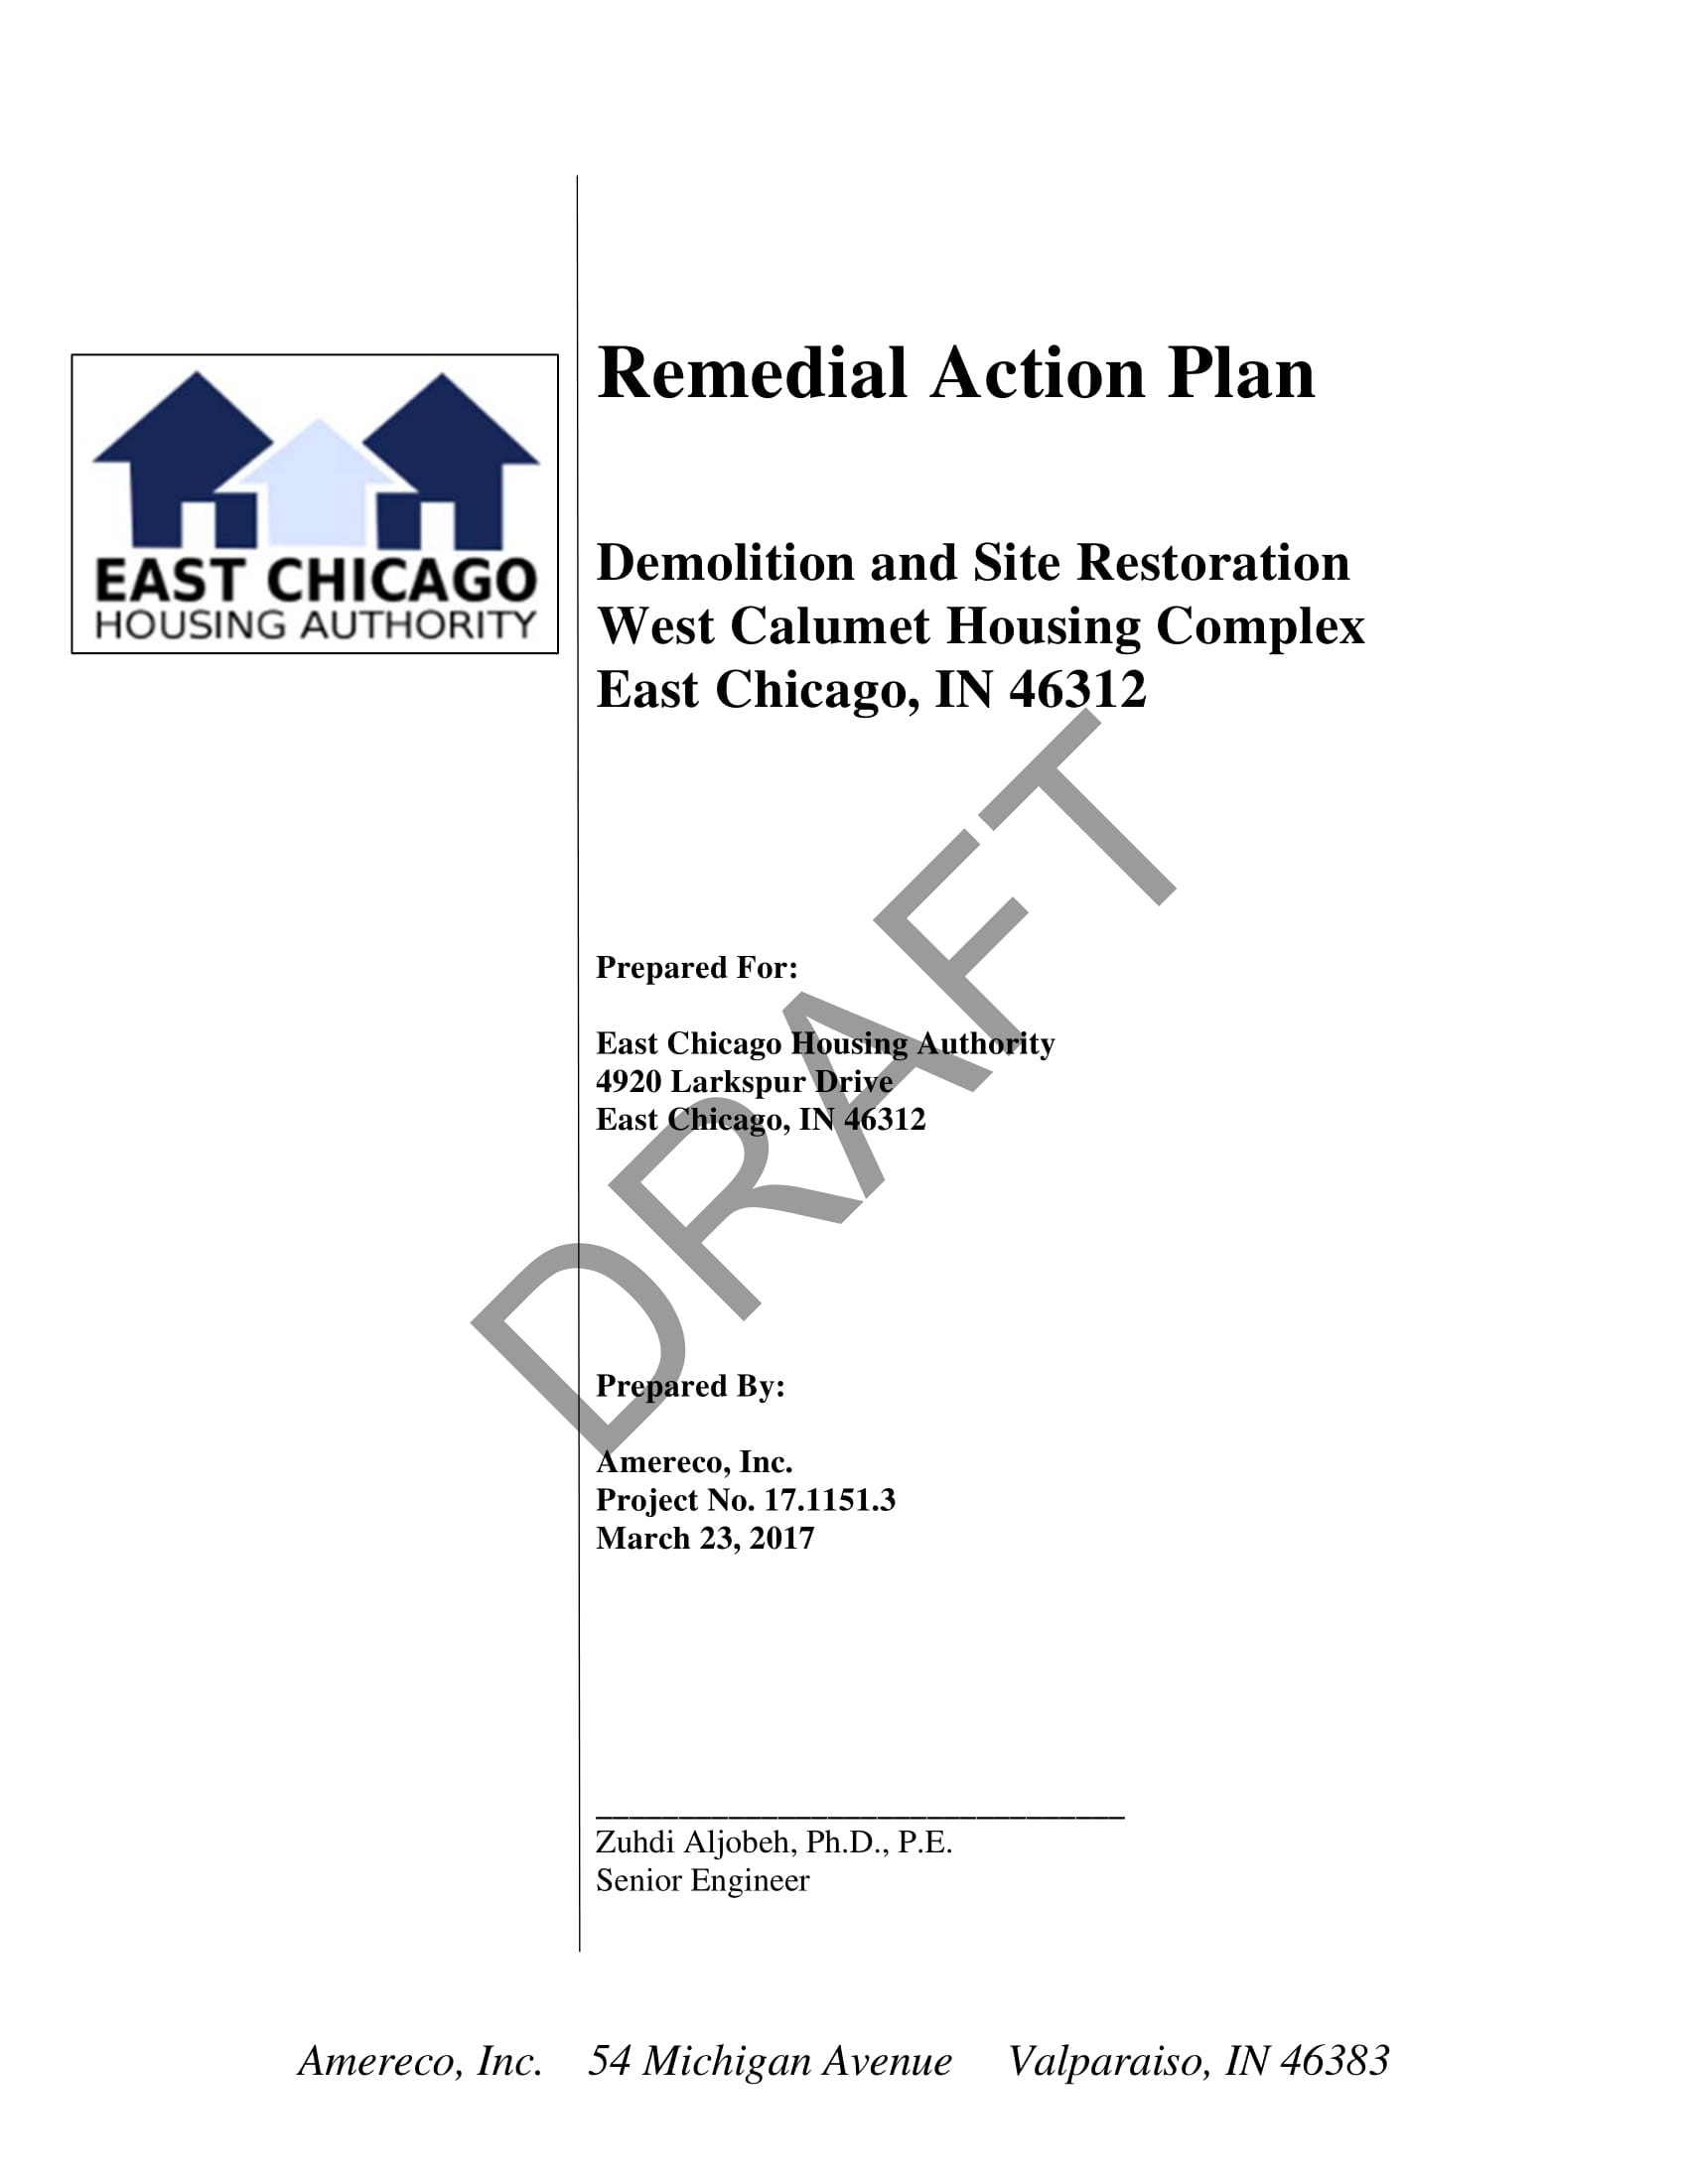 remedial action plan draft example 01